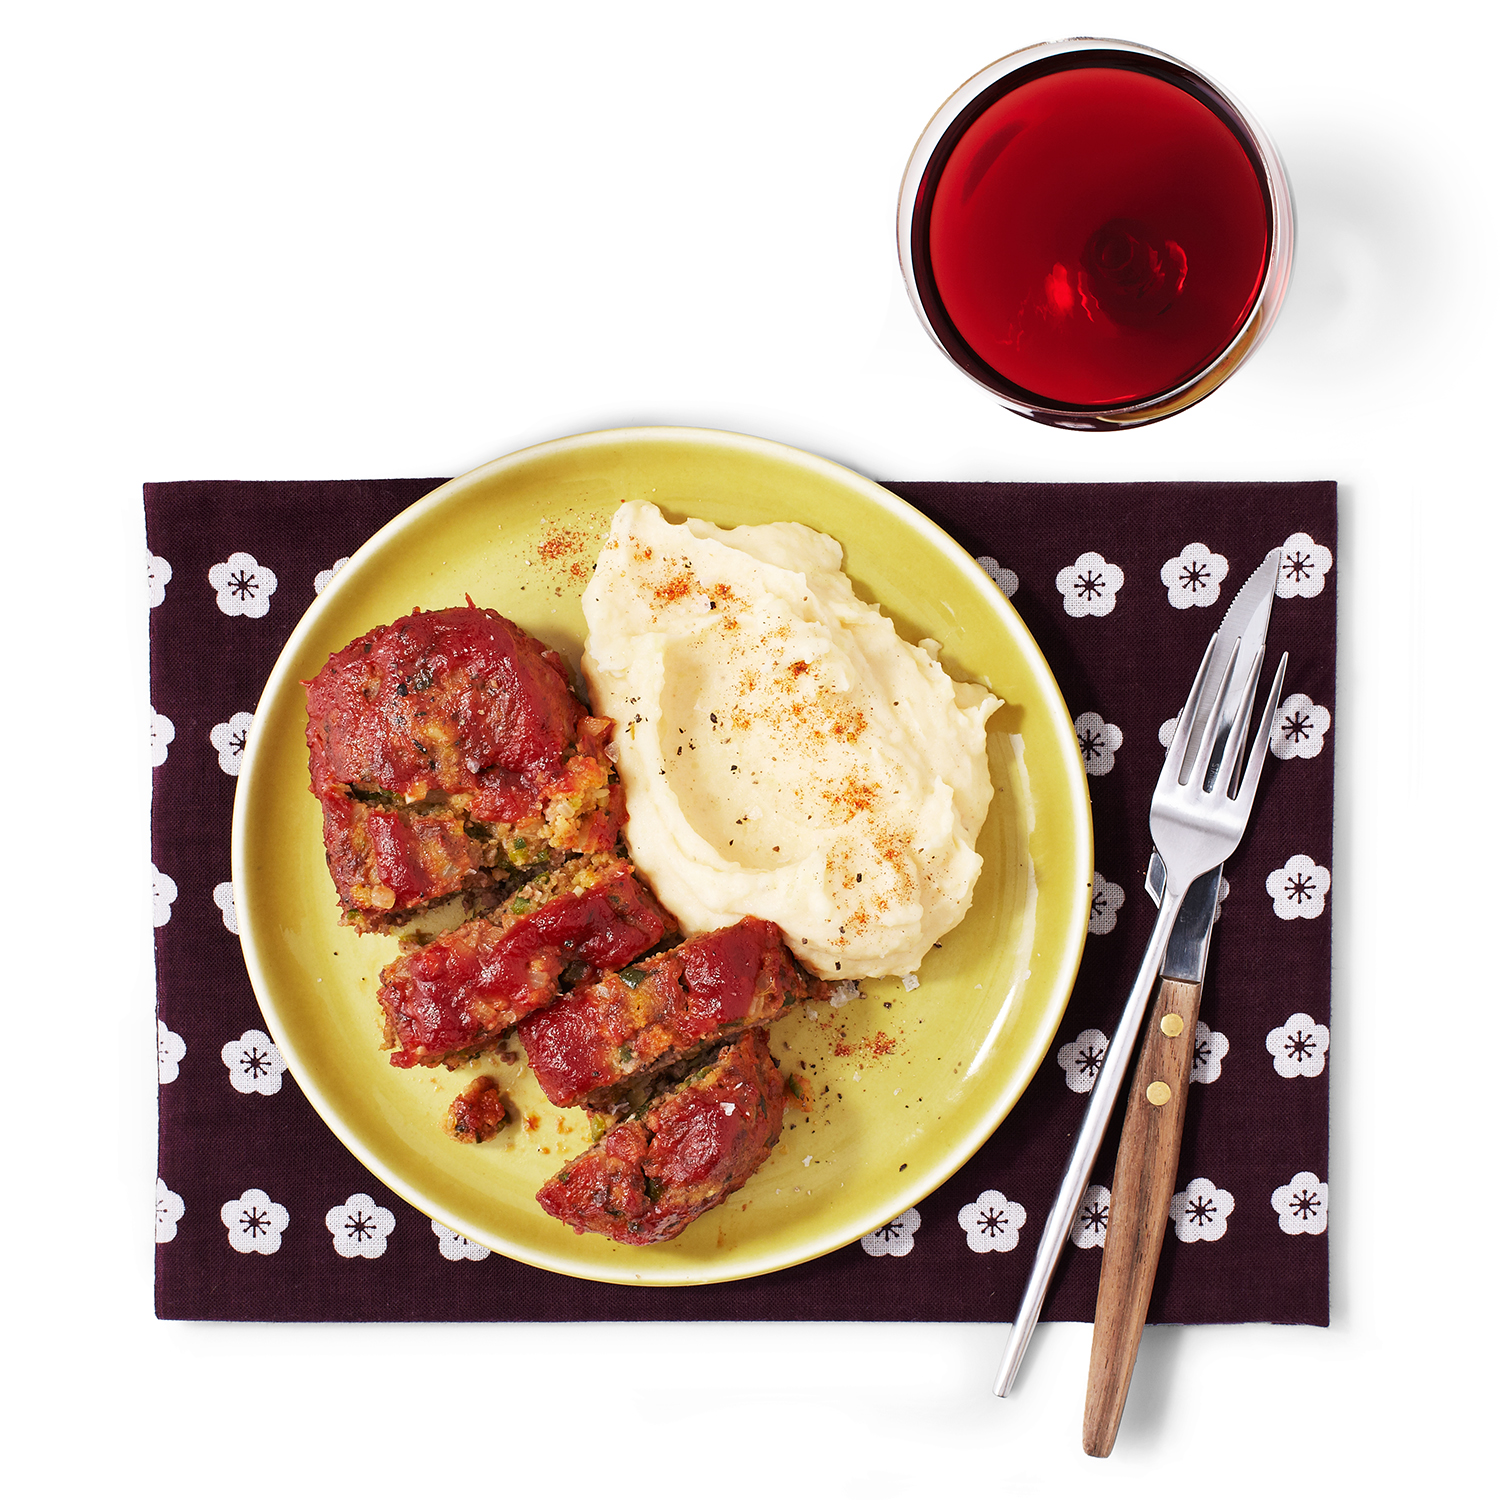 Louisiana-Style Meat Loaves and Mashed Potatoes